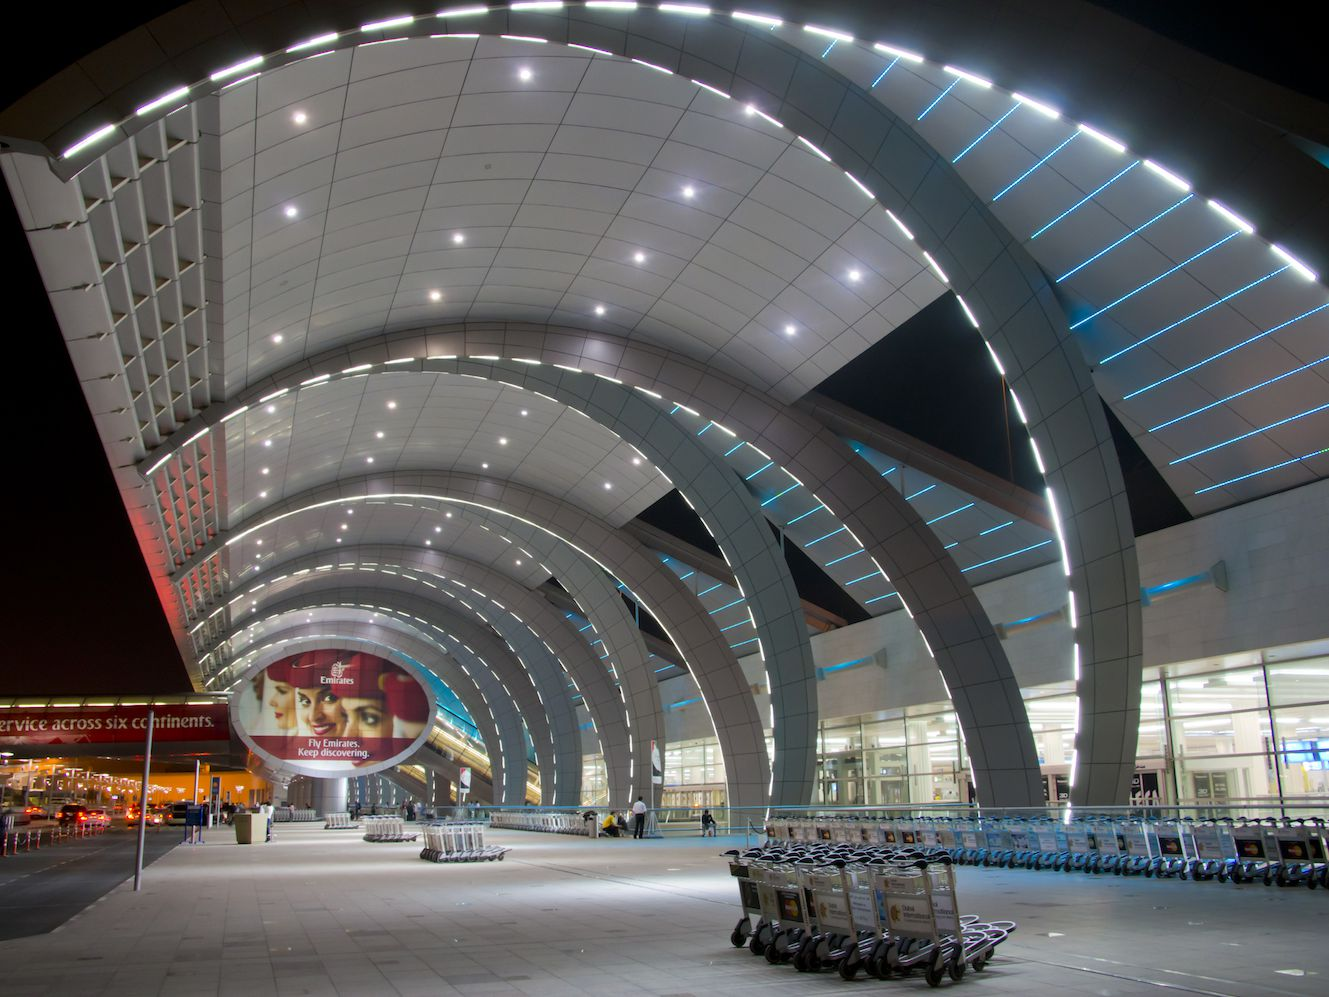 10 of the Largest Construction Projects in the World